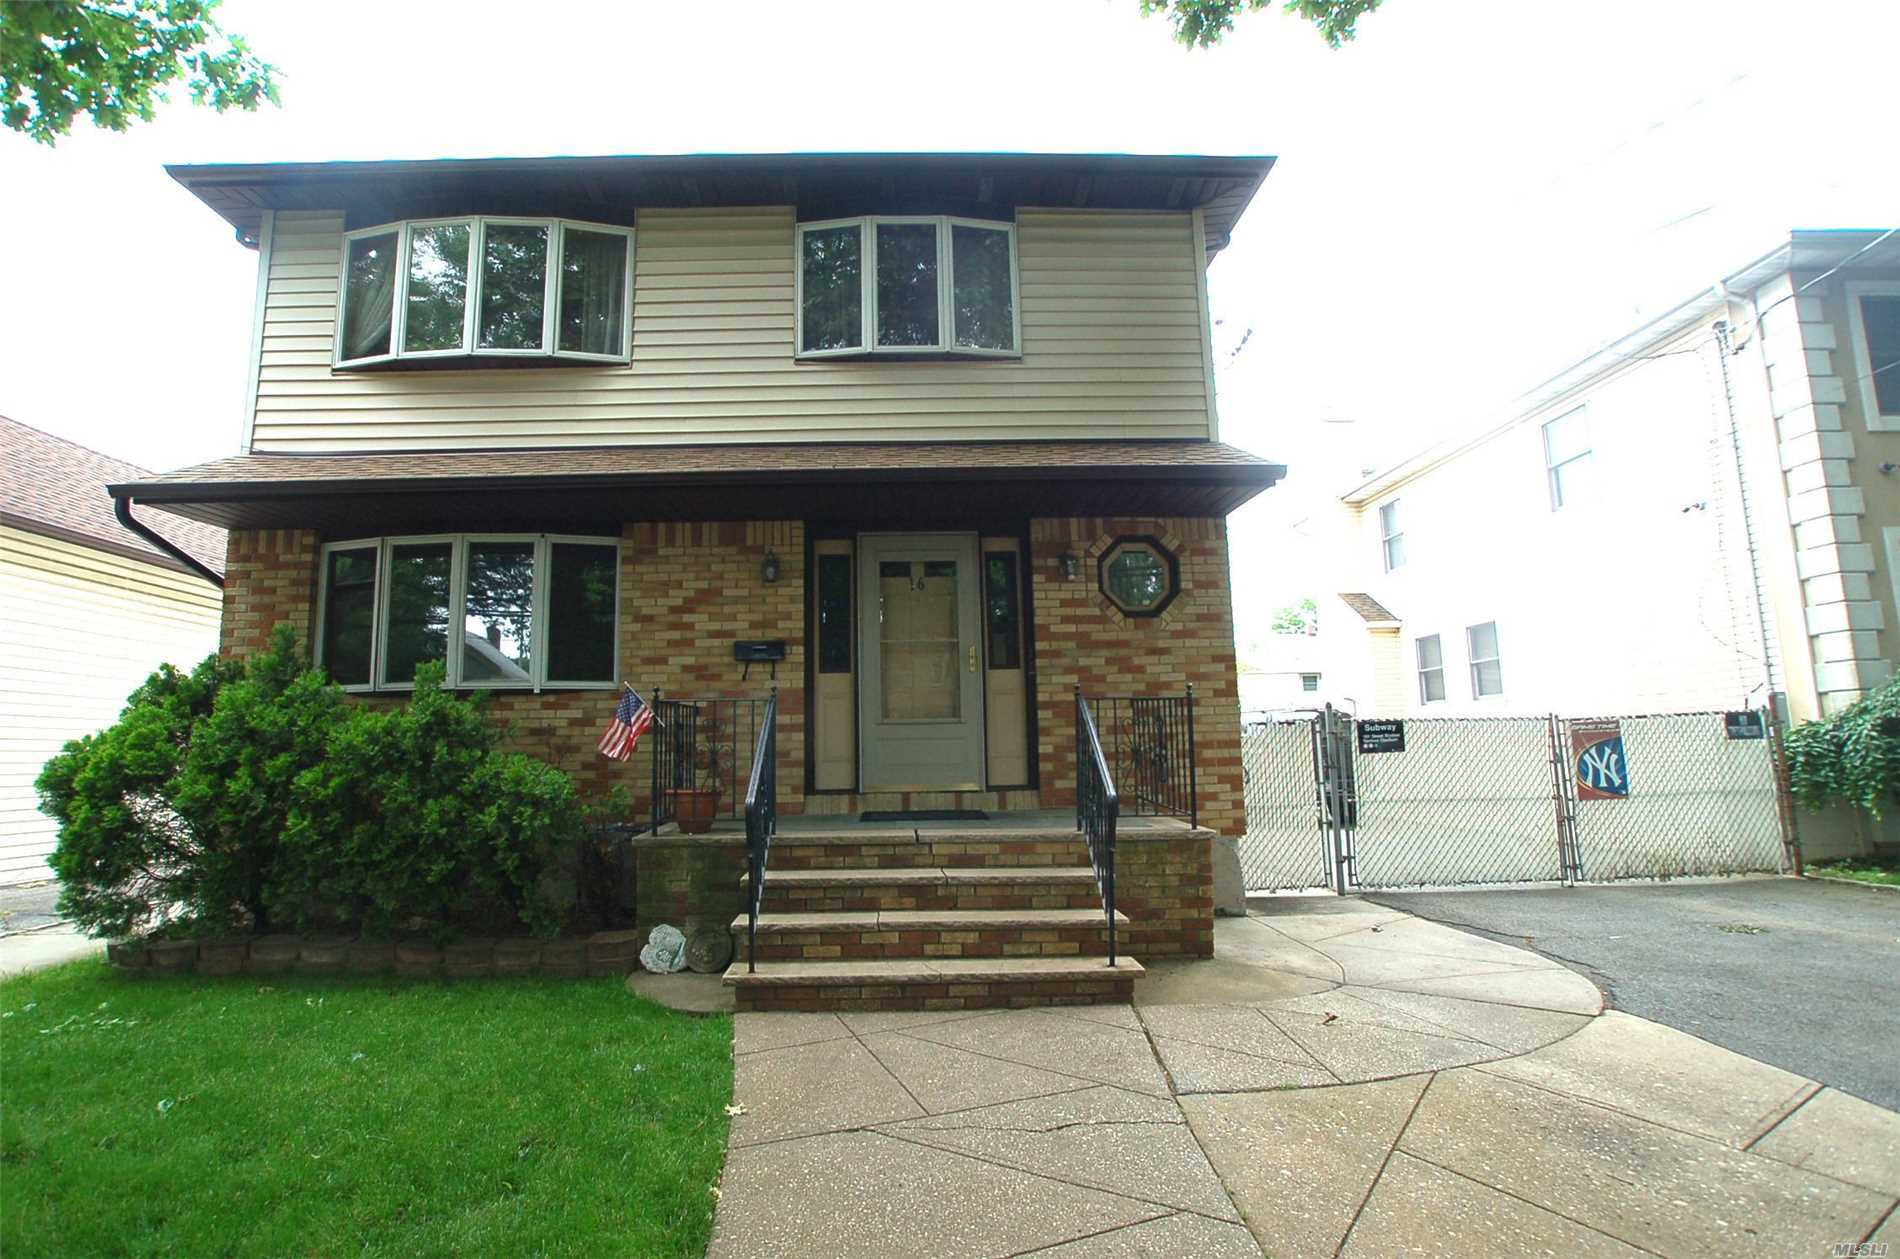 Huge Price Reduction, Owner Wants To Hear All Offers Large 2392 Sq' Of Living Space. Rebuilt In 1986. Andersen Windows, Plenty Of Room For Mom, Outside Entry. Close To All Shopping, Transportation-5 Min Walk To Lirr Station-30 Minutes To New York City.